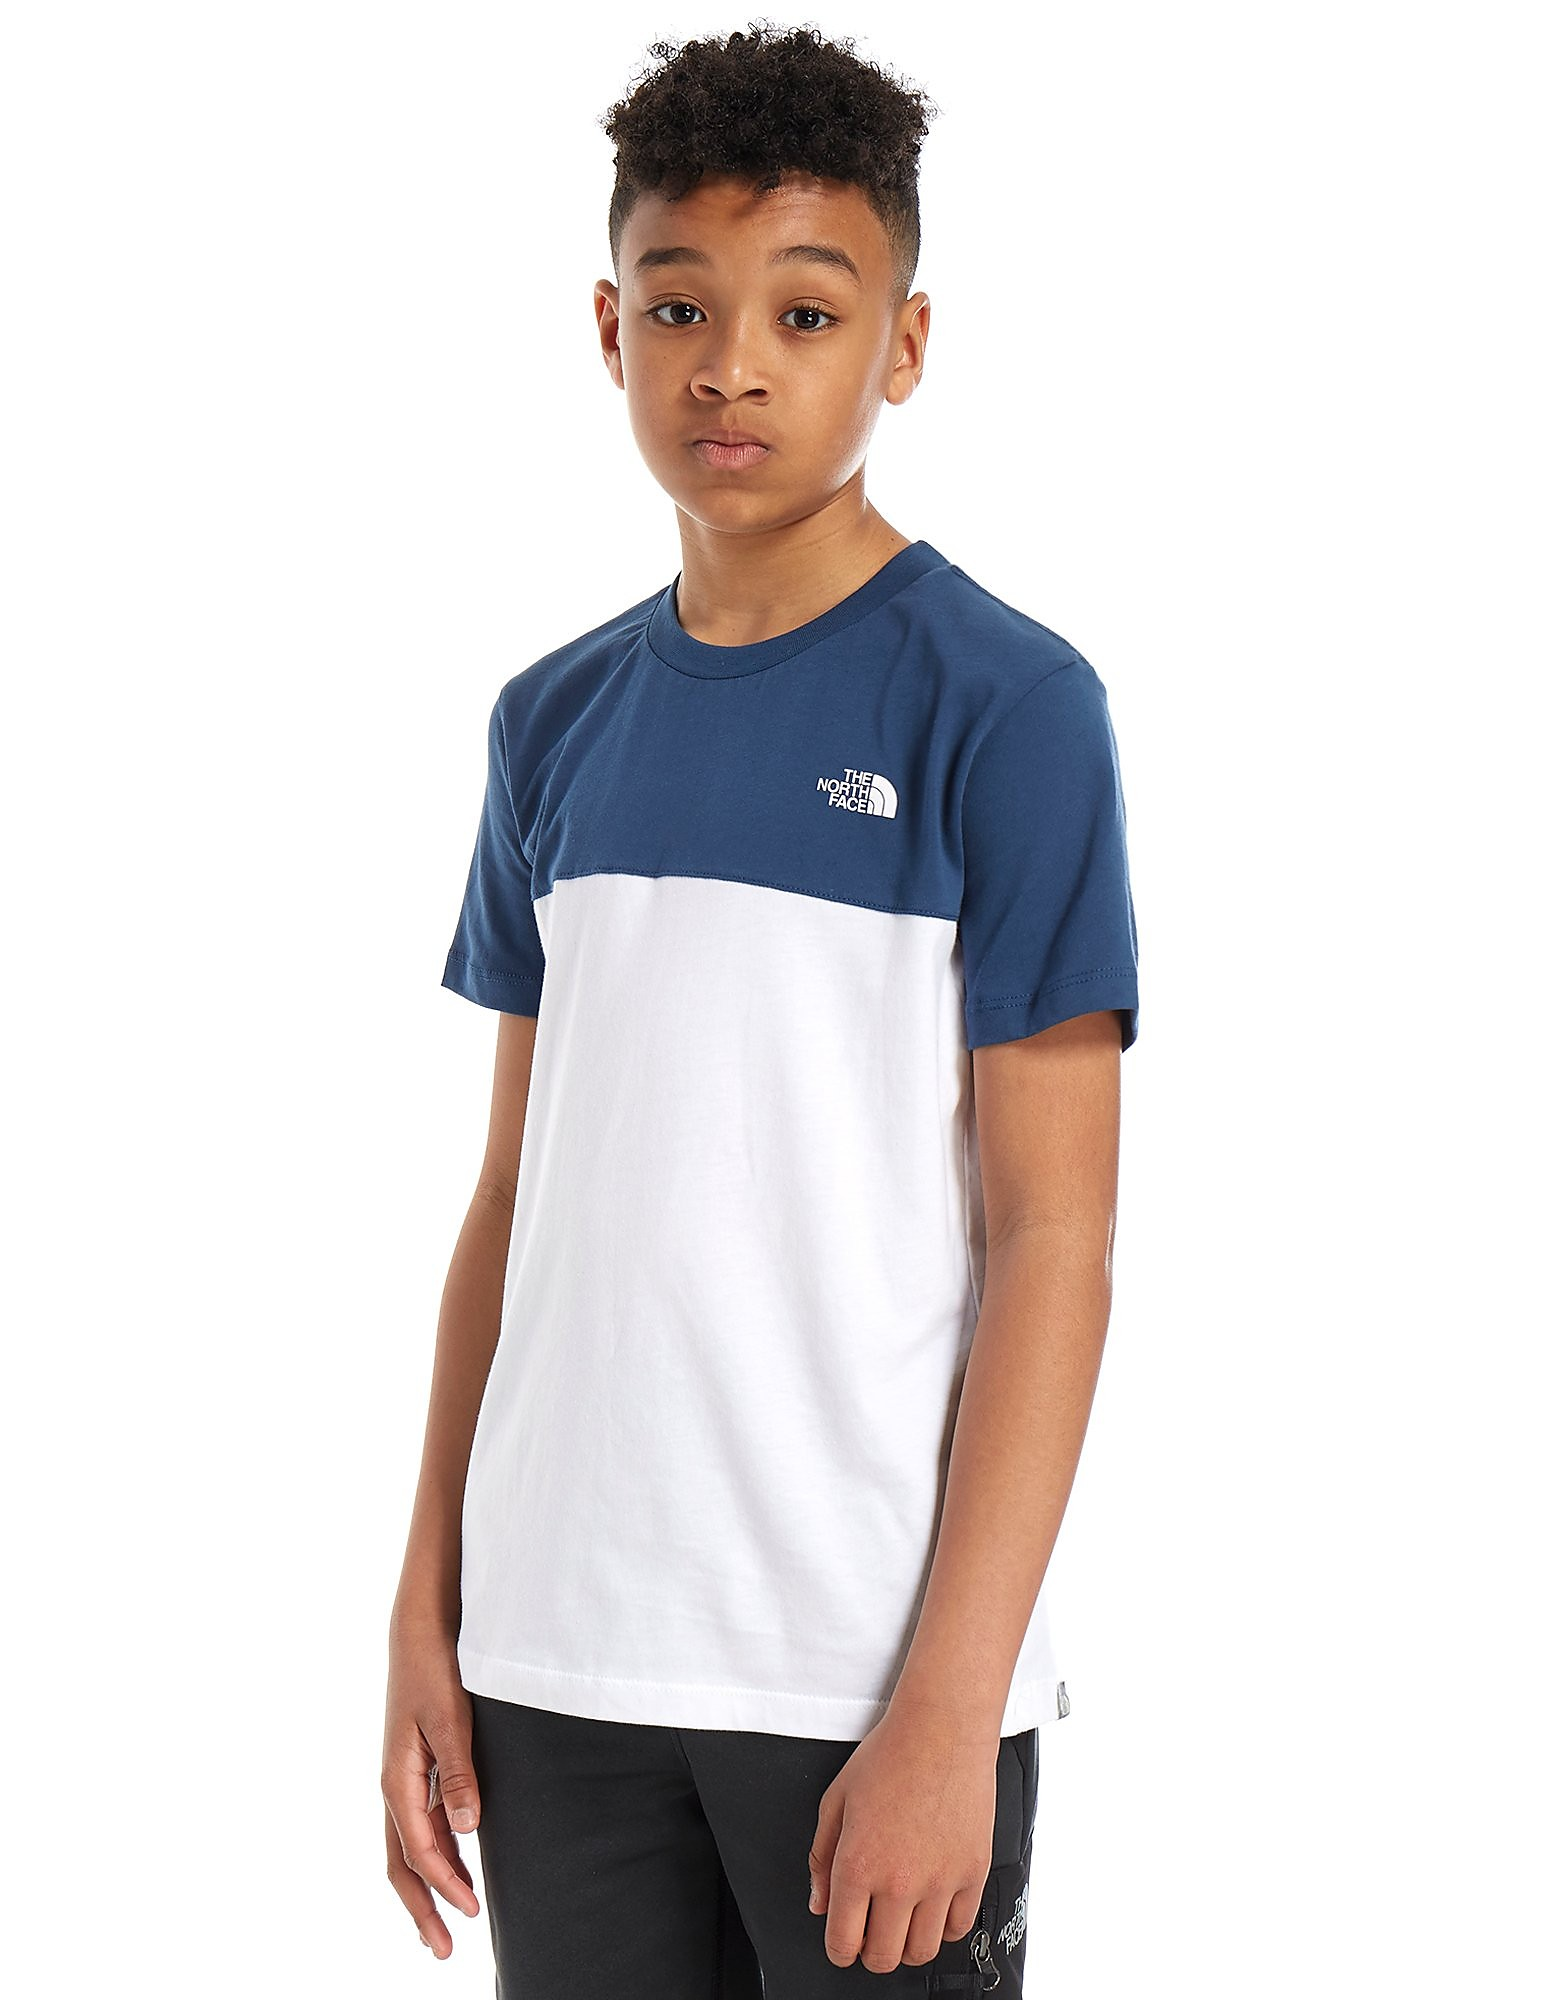 The North Face T-shirt Colour Black Junior